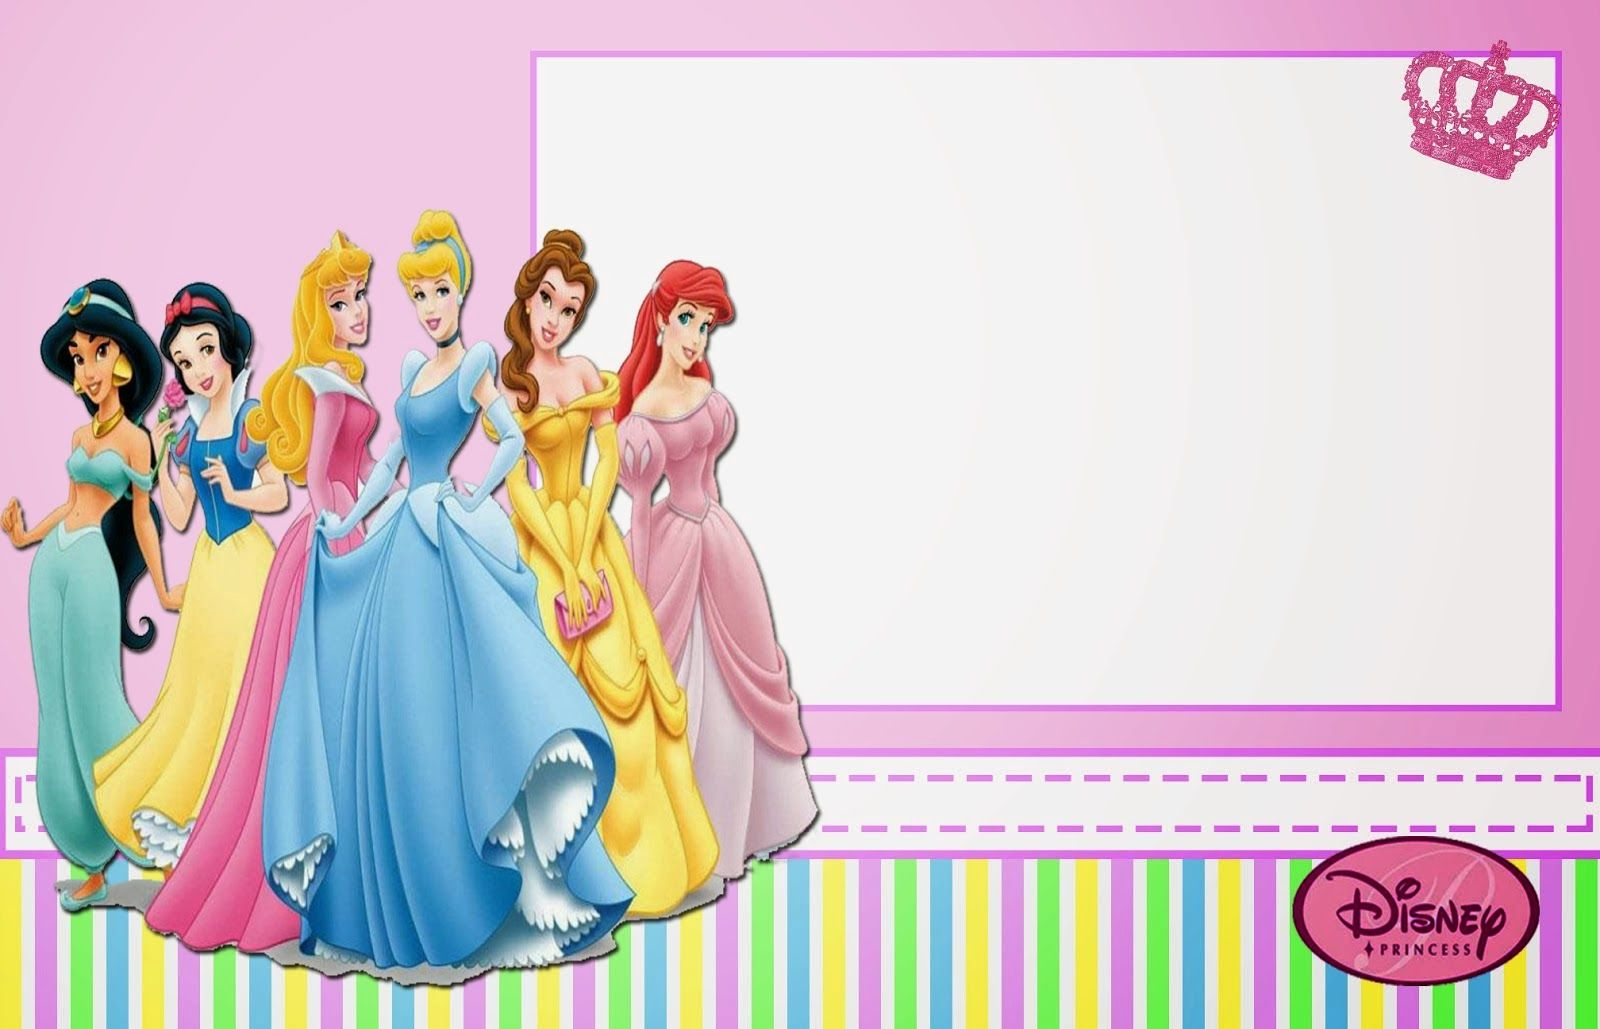 Disney Princess Free Printable Invitations, Cards or Photo Frames ...